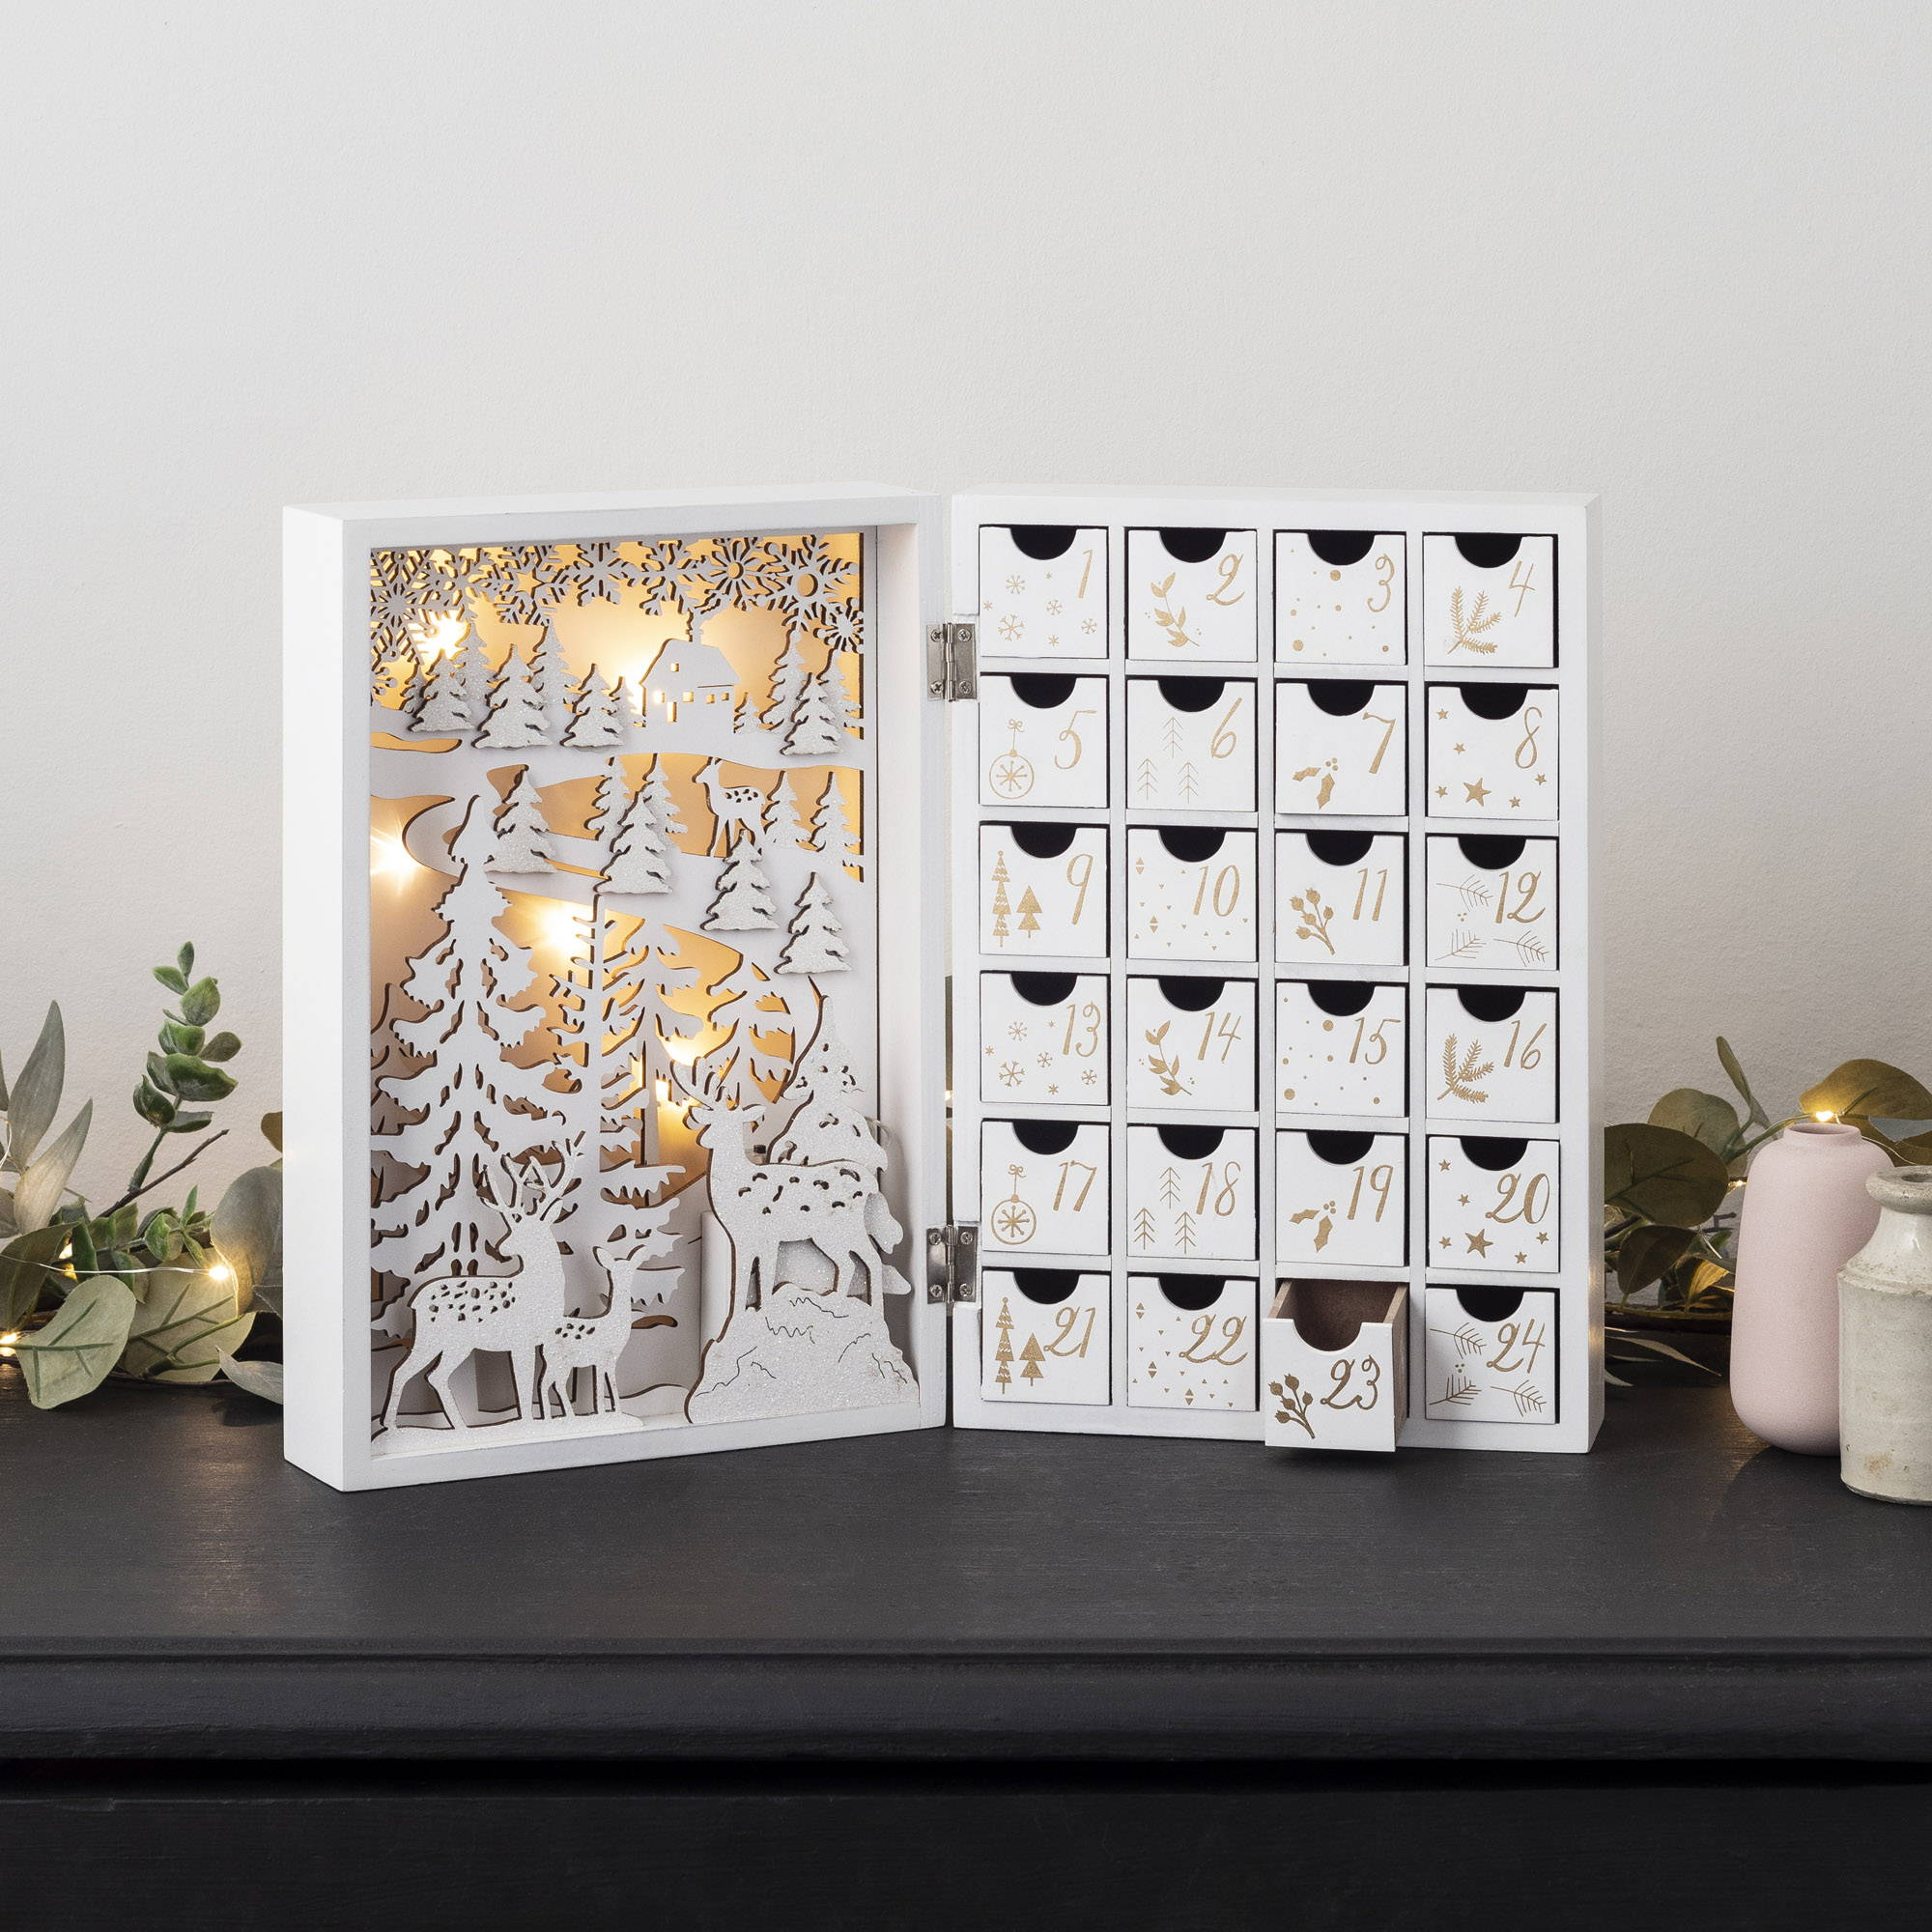 Christmas Advent Calendar Opened on Sideboard